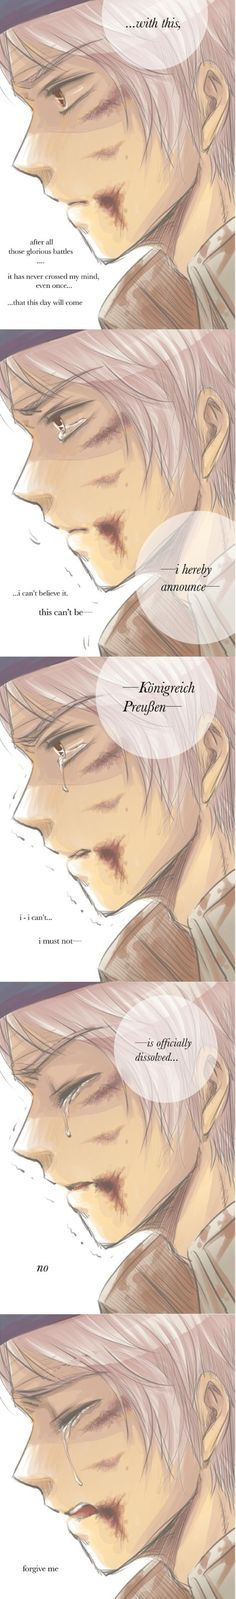 Prussia, Hetalia Fan Art - February, 25,1947 The kingdom of Prussia was officially dissolved.